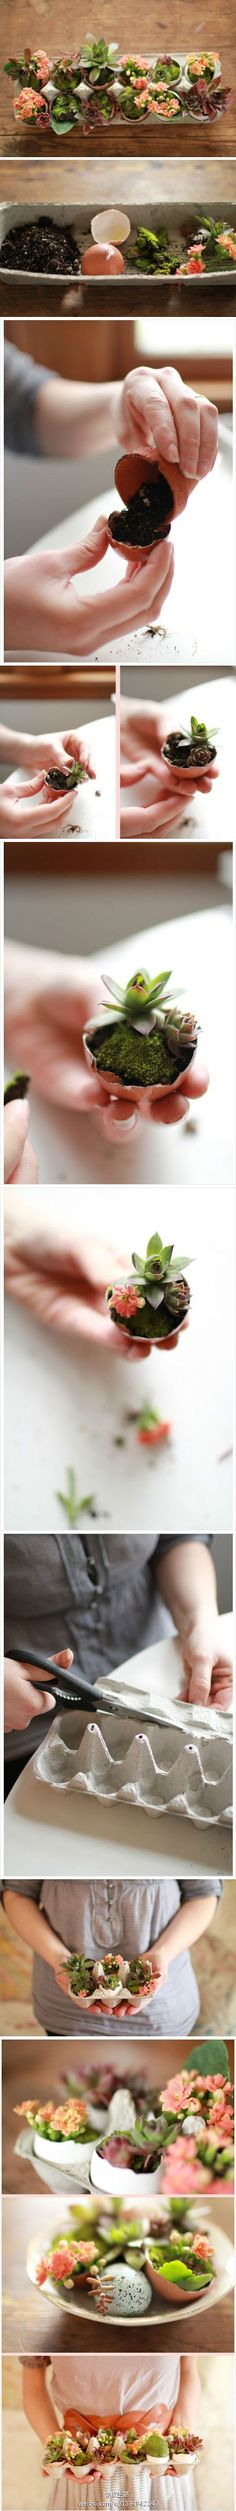 succulents in egg shells.